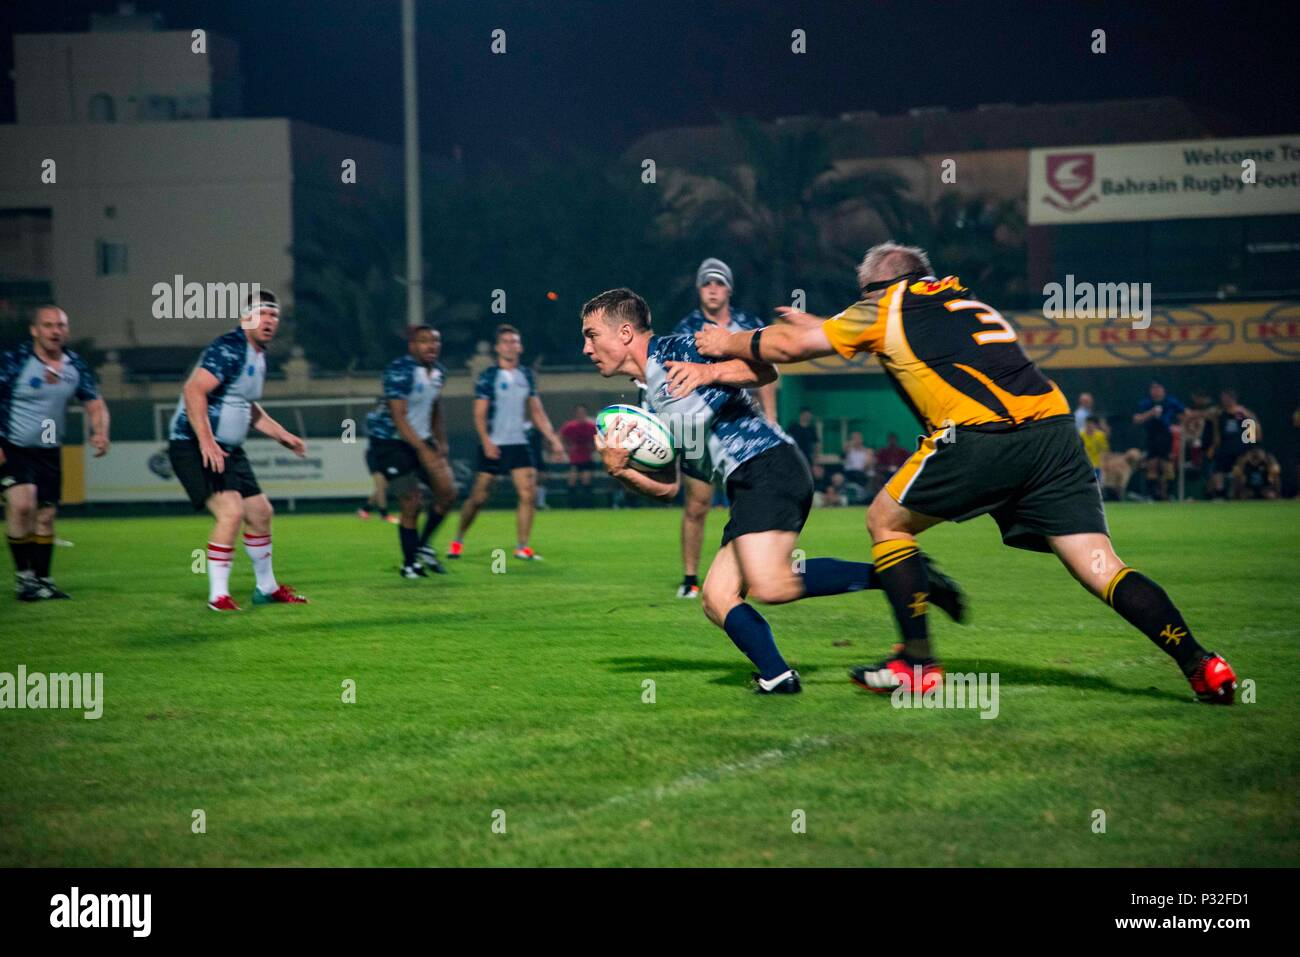 160814-N-QI061-279  MANAMA, Bahrain (Aug. 14, 2016) Lt. Cmdr. Bradley Hunsaker, assigned to the Zappers of Electronic Attack Squadron (VAQ) 130, breaks through a tackle in a rugby game between the Ike Maulers and a local rugby team, the Golden Eagles, during a port visit to the Kingdom of Bahrain. USS Dwight D. Eisenhower and its Carrier Strike Group are deployed in support of Operation Inherent Resolve, maritime security operations and theater security cooperation efforts in the U.S. 5th Fleet area of operations. (U.S. Navy photo by Mass Communication Specialist 3rd Class Nathan T. Beard) Stock Photo